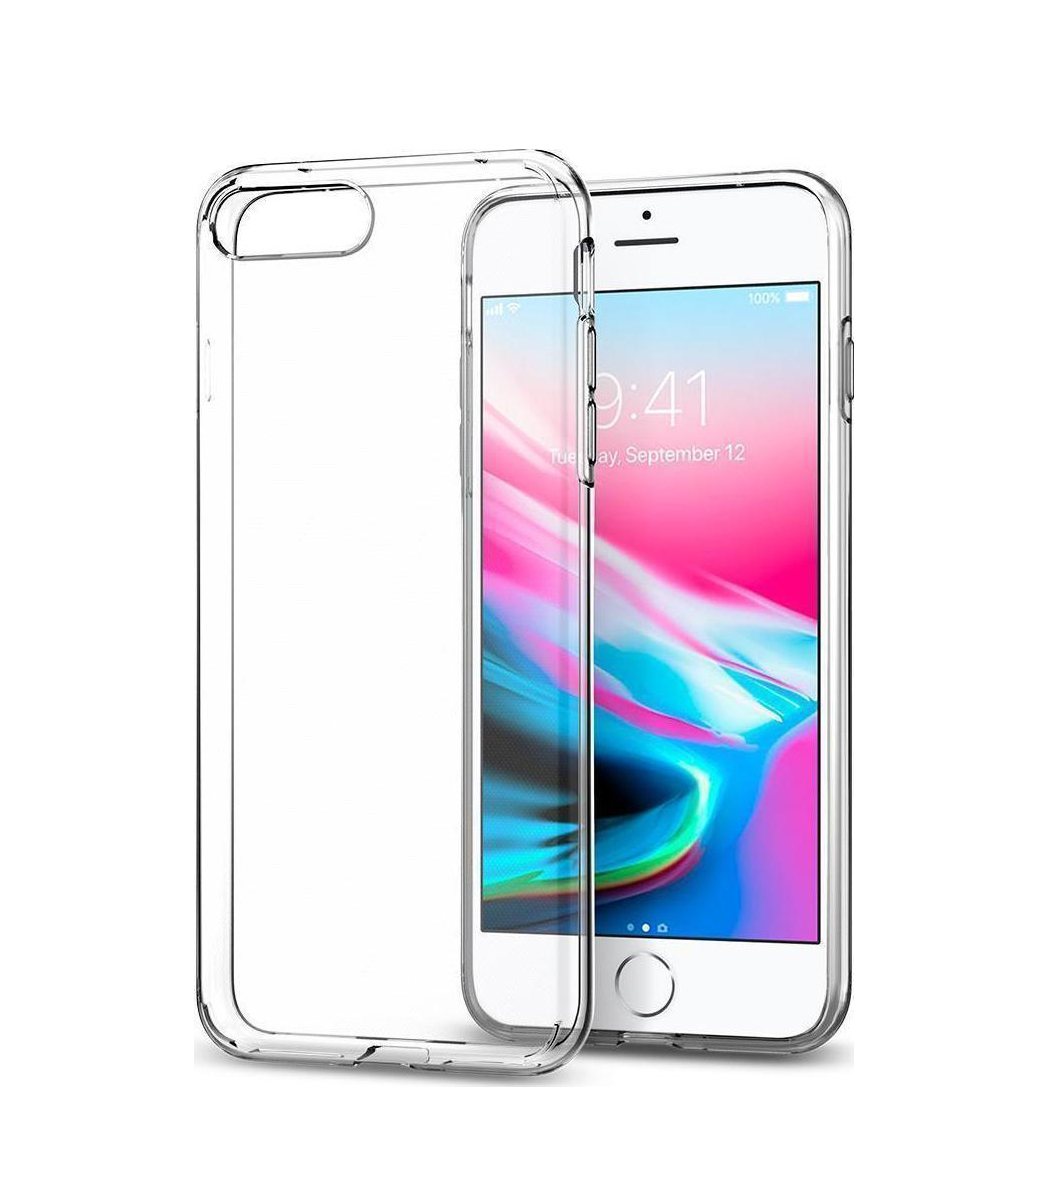 Θήκη Spigen Liquid Crystal 2 για iPhone 7/8 Plus Crystal Clear